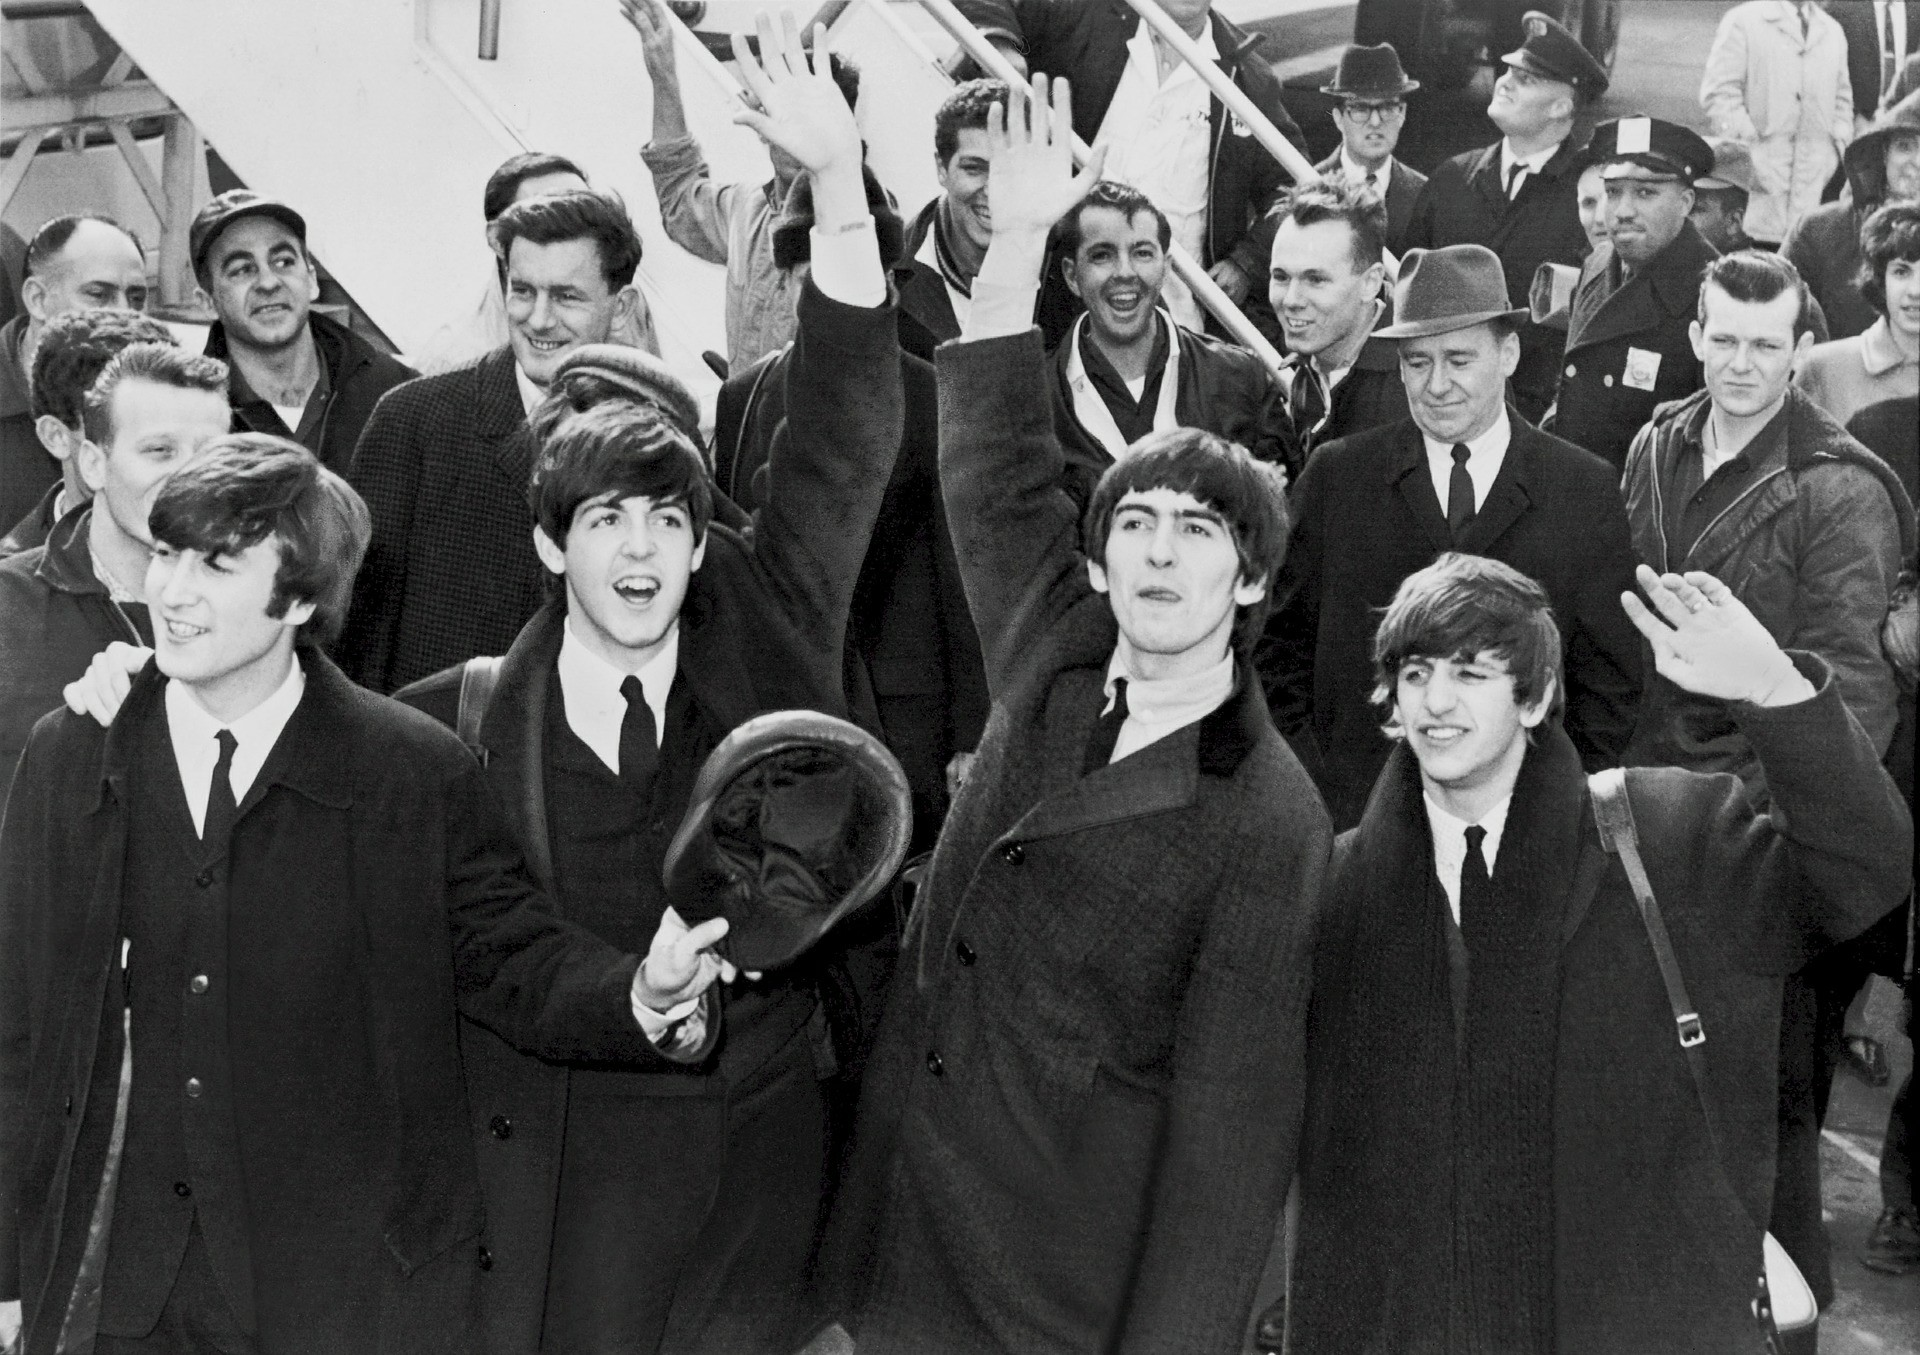 the-beatles-509069_1920.jpg